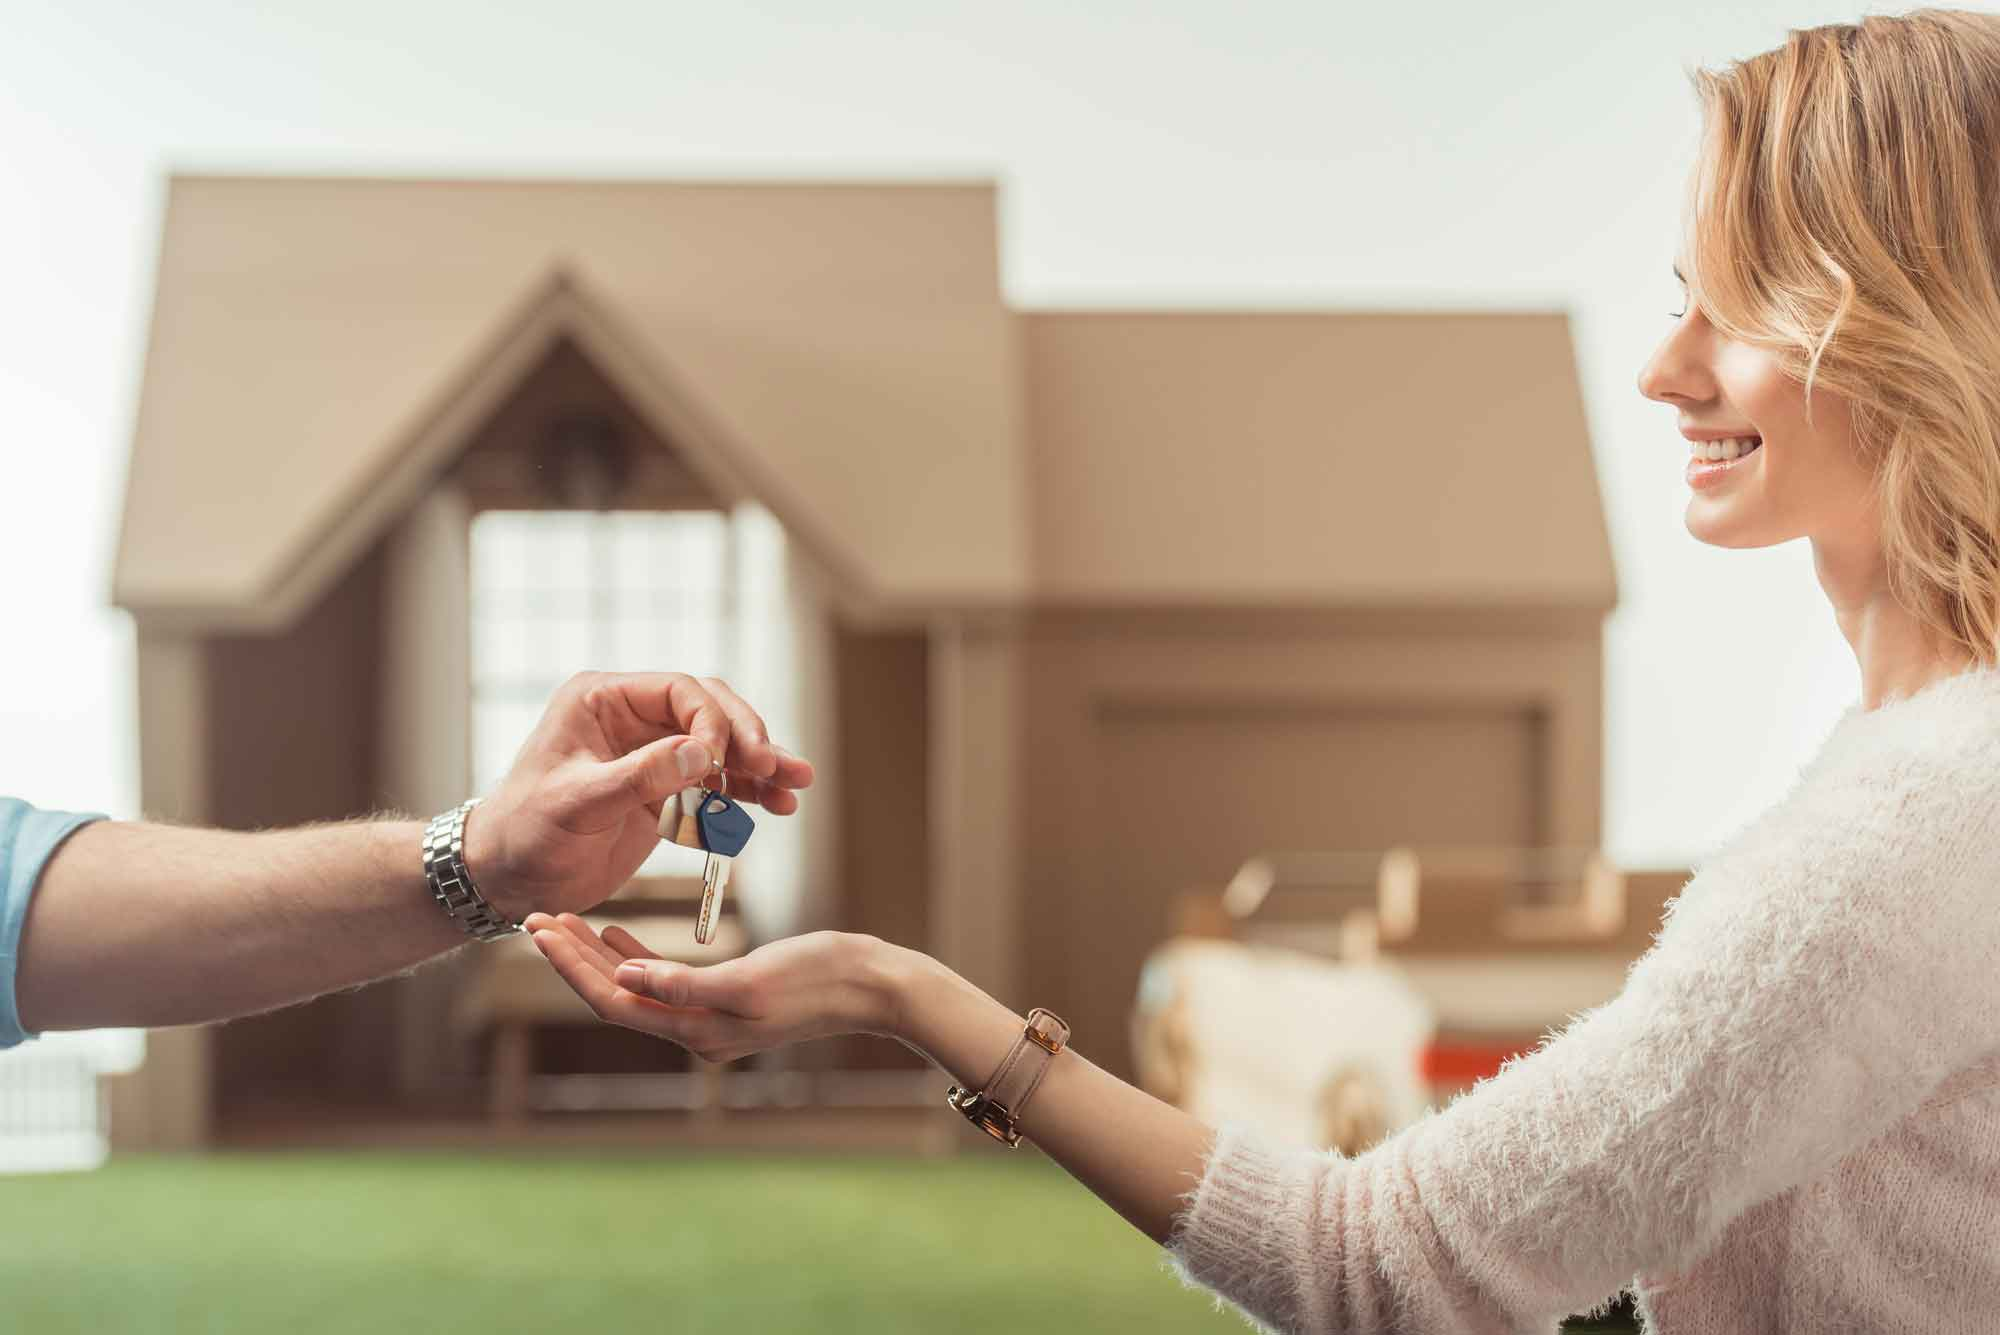 6 Questions to ask when choosing a Real Estate Agent to sell your property